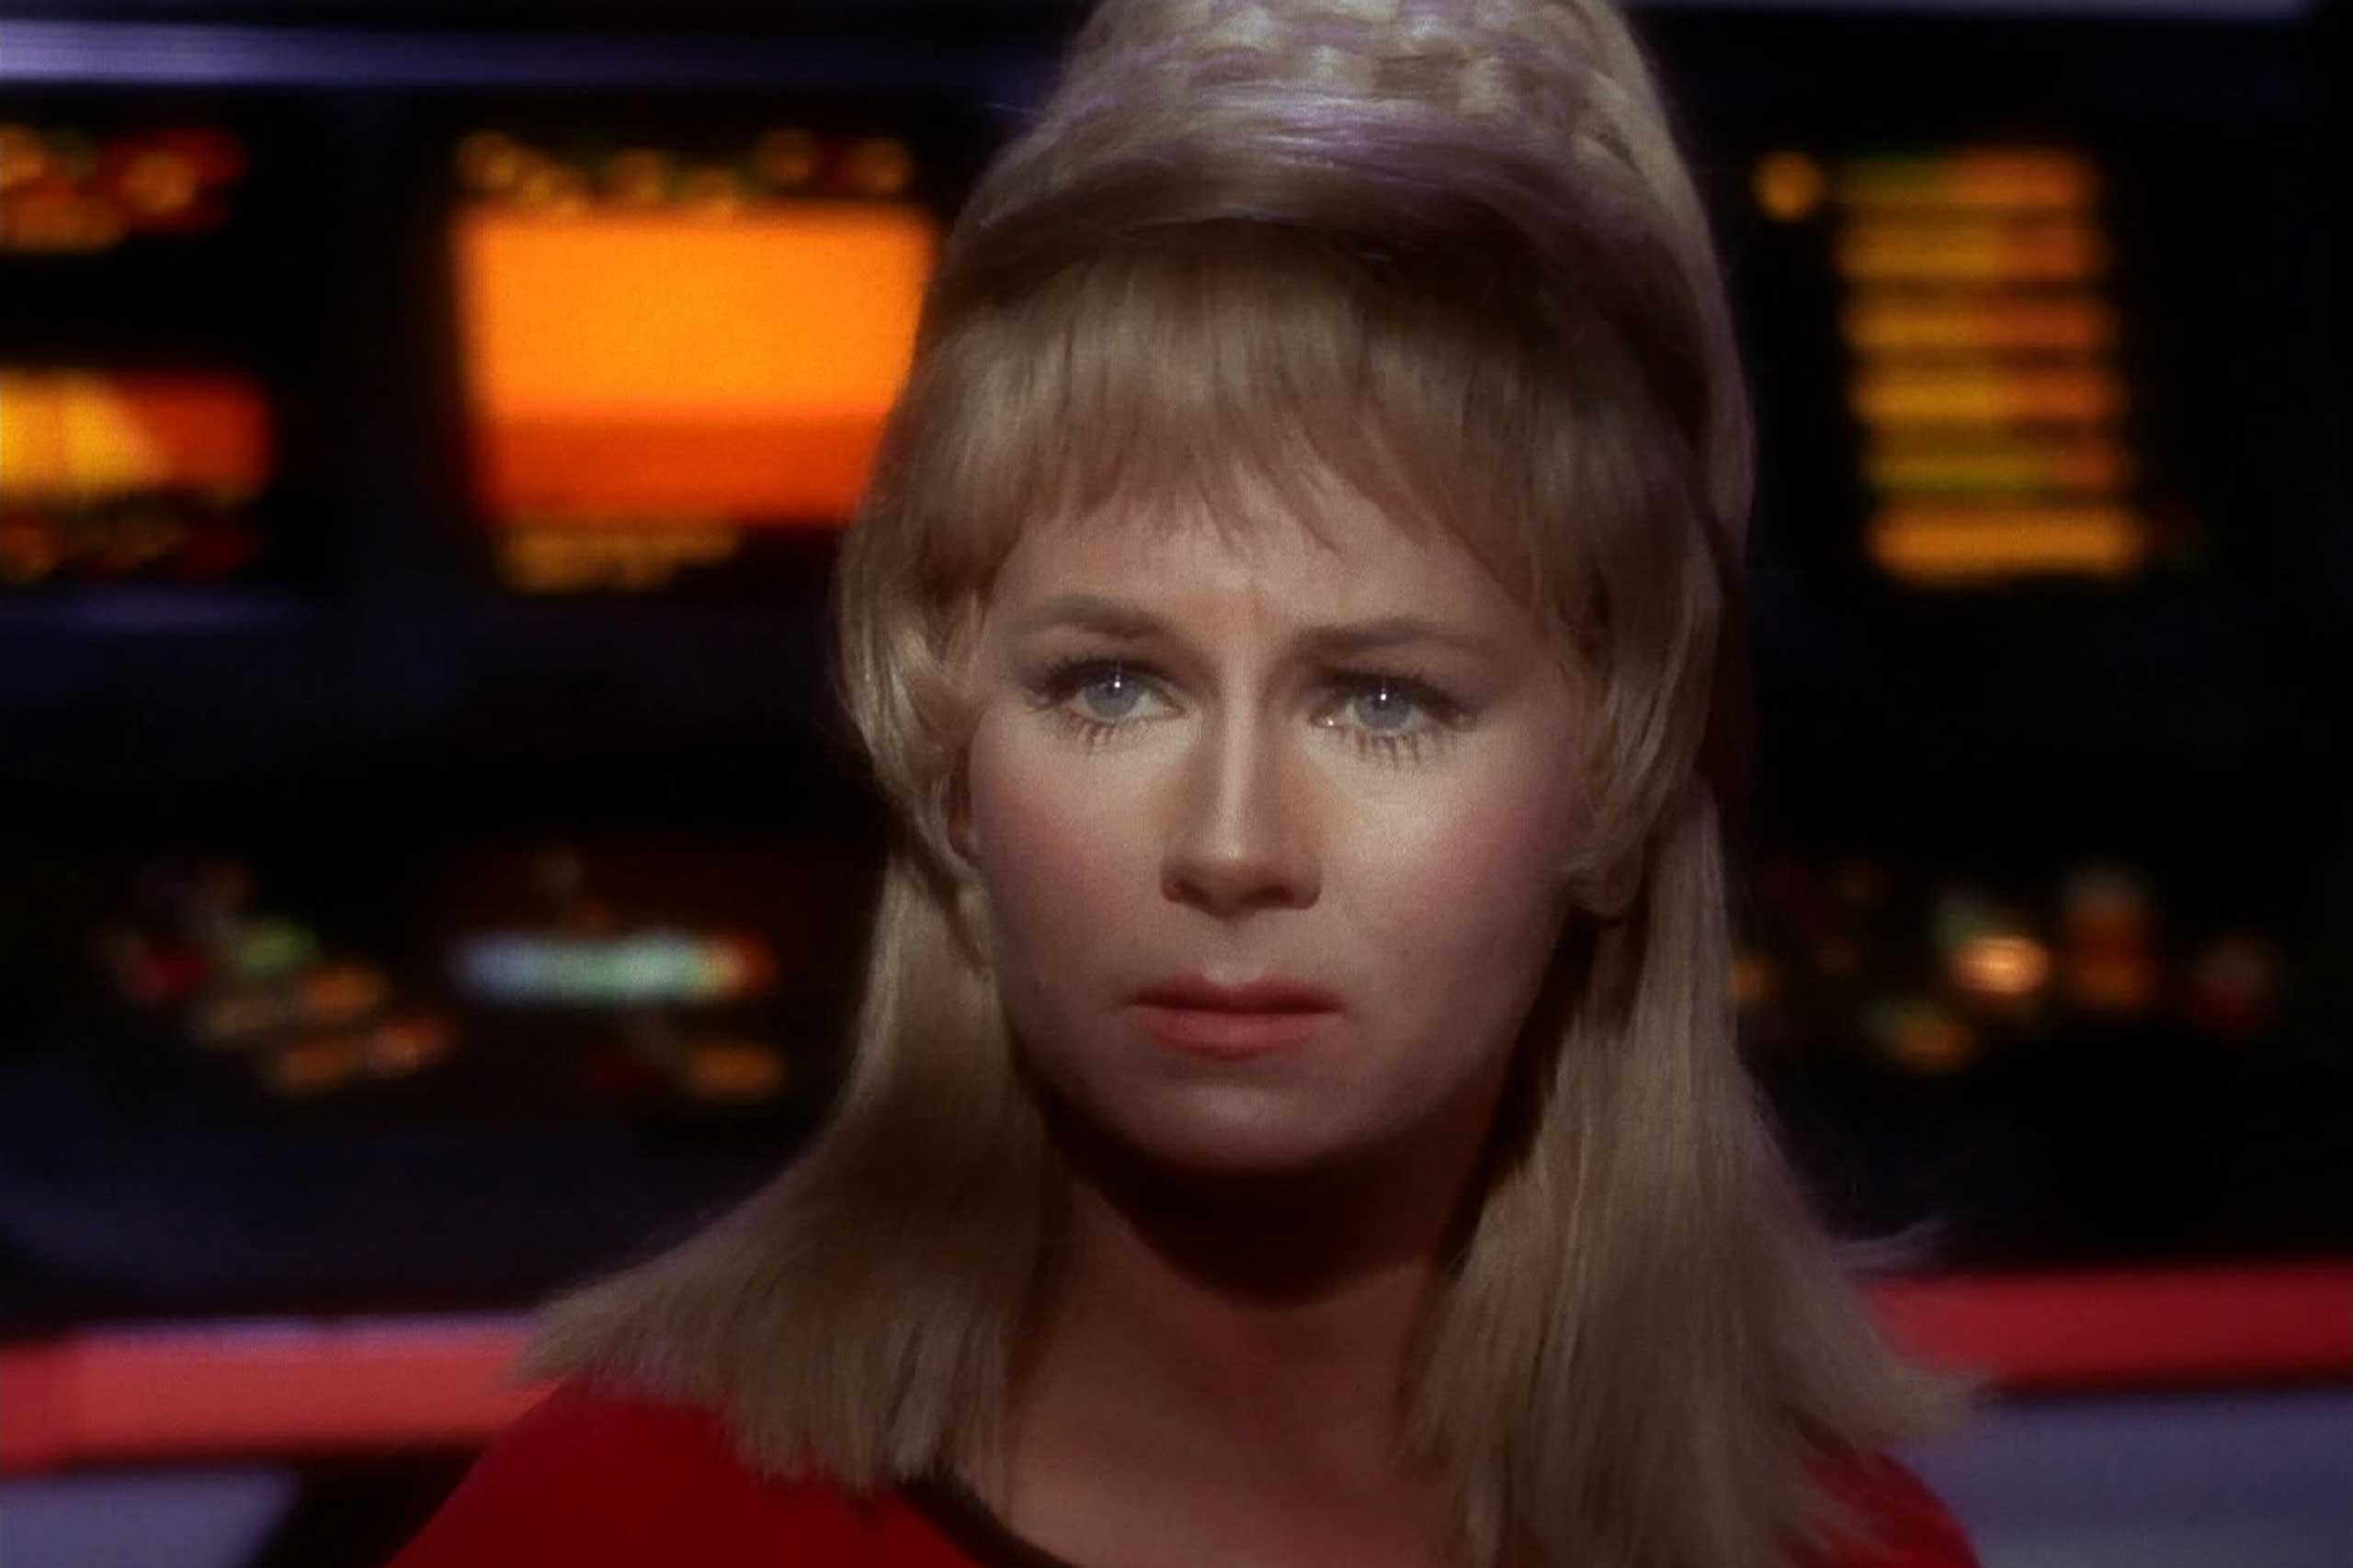 Actress Grace Lee Whitney, best known as Yeoman Rand on the original Star Trek television series, died at the age of 85 in Coarsegold, Calif. on May 3, 2015.